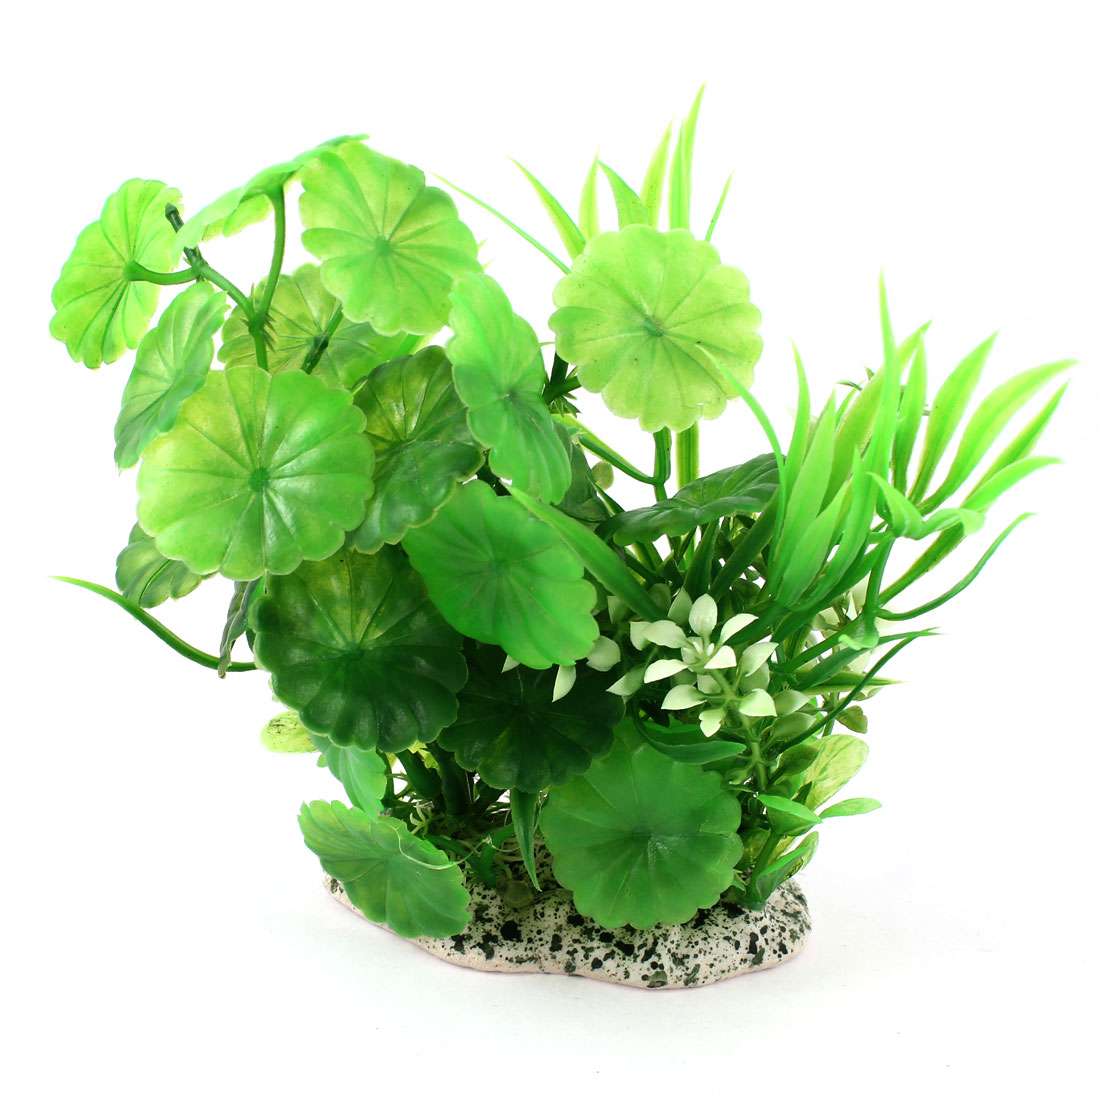 "Fish Tank Ornament Green Plastic Simulation Aquatic Plant Grass 4.3"" Height"